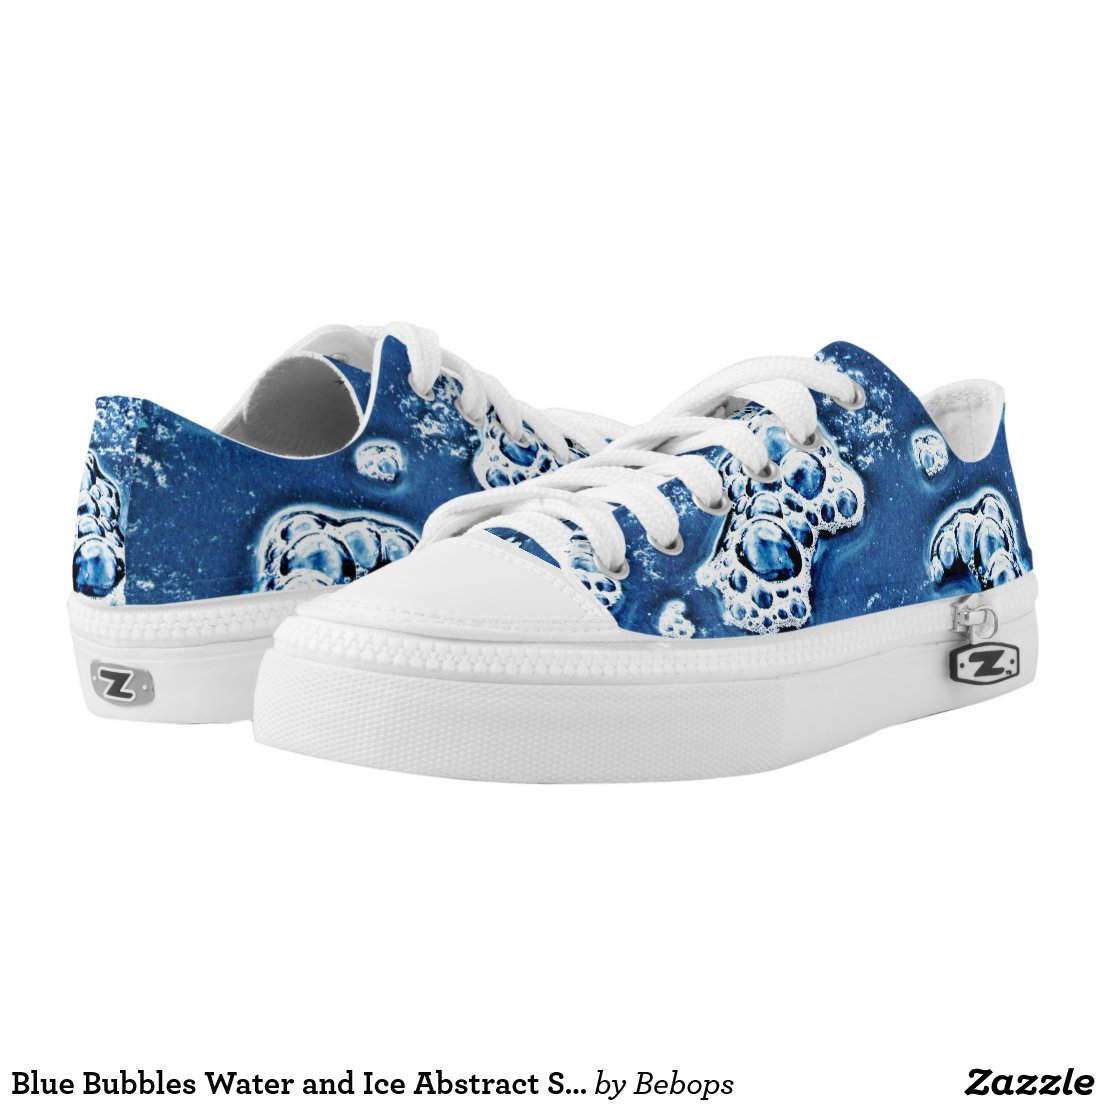 Blue Bubbles Water and Ice Abstract Sneakers